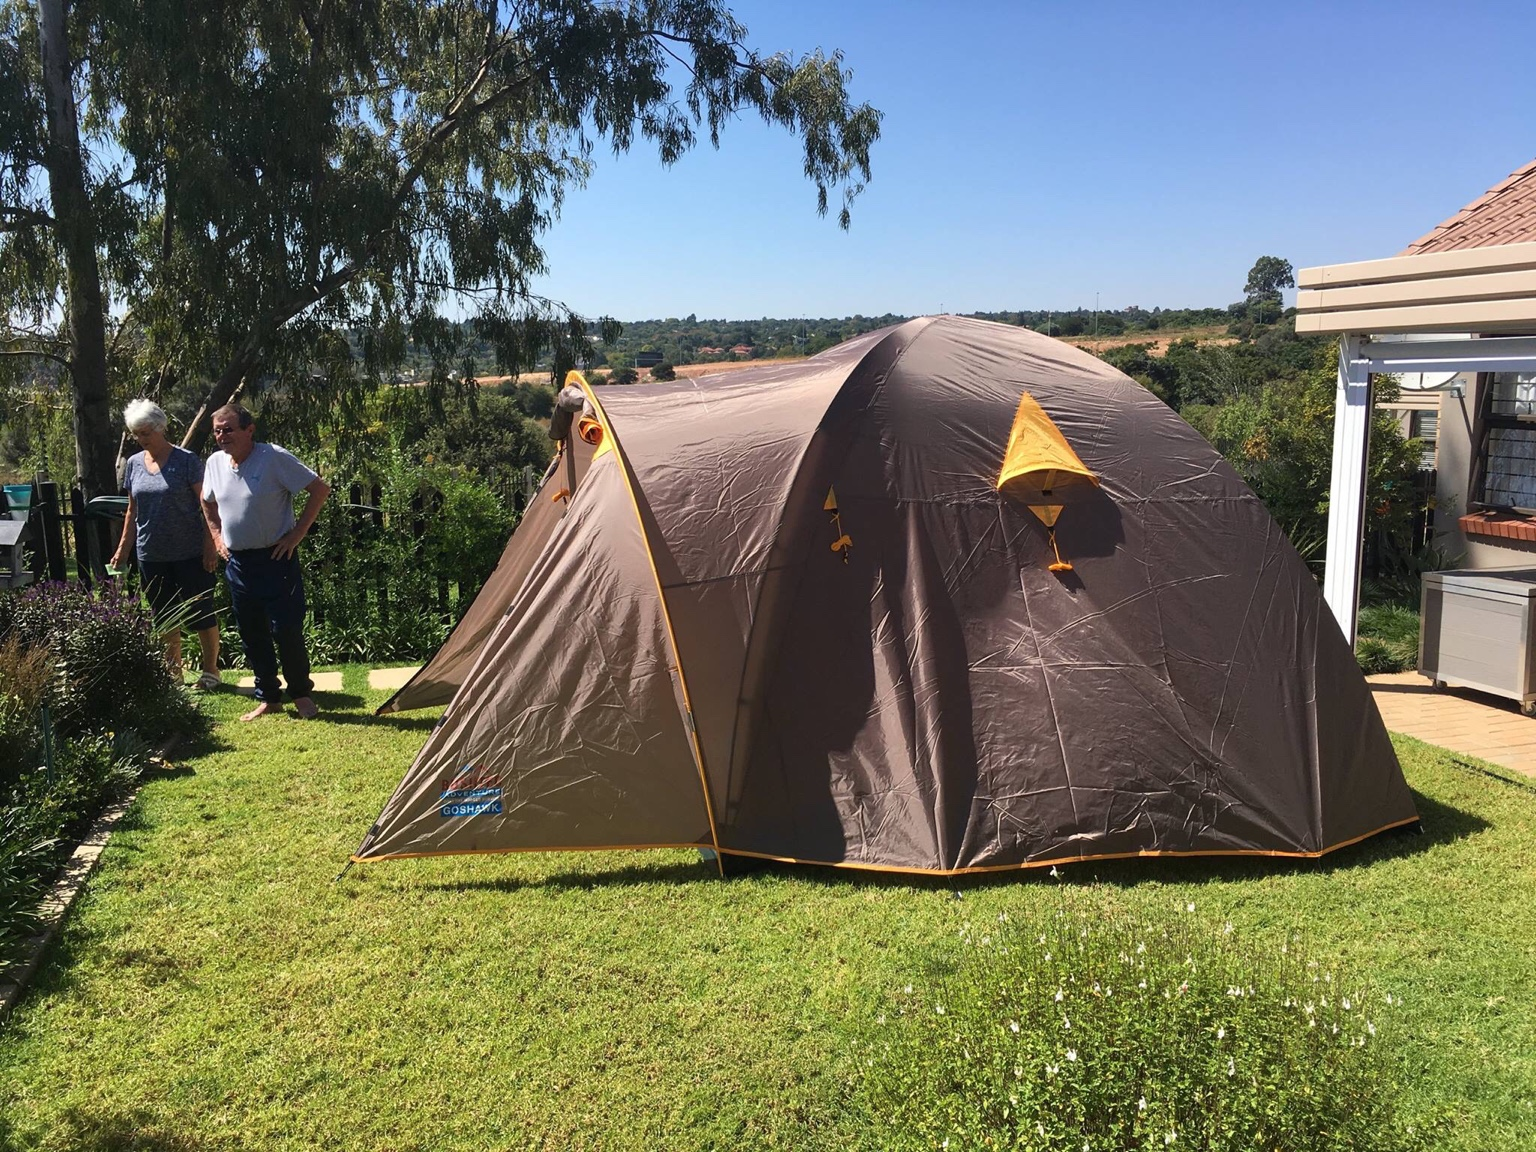 It took me about 30 mins to set up and the main problem was trying to get the flysheet over the 2m dome (I am only 1.63m)...grins. & Bushtec Adventure Goshawk